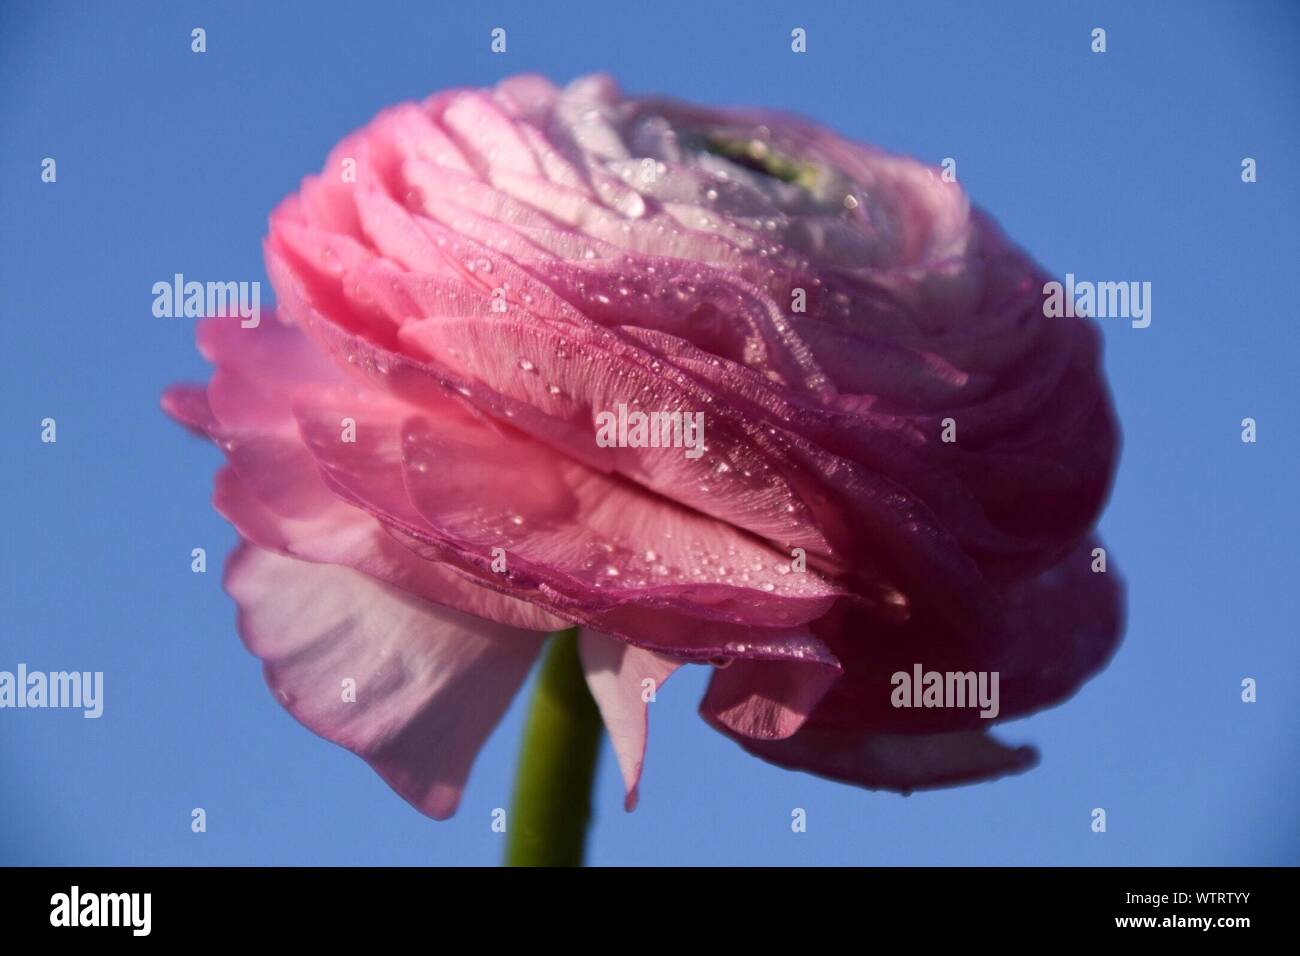 Close-up Of Wet Flower - Stock Photo